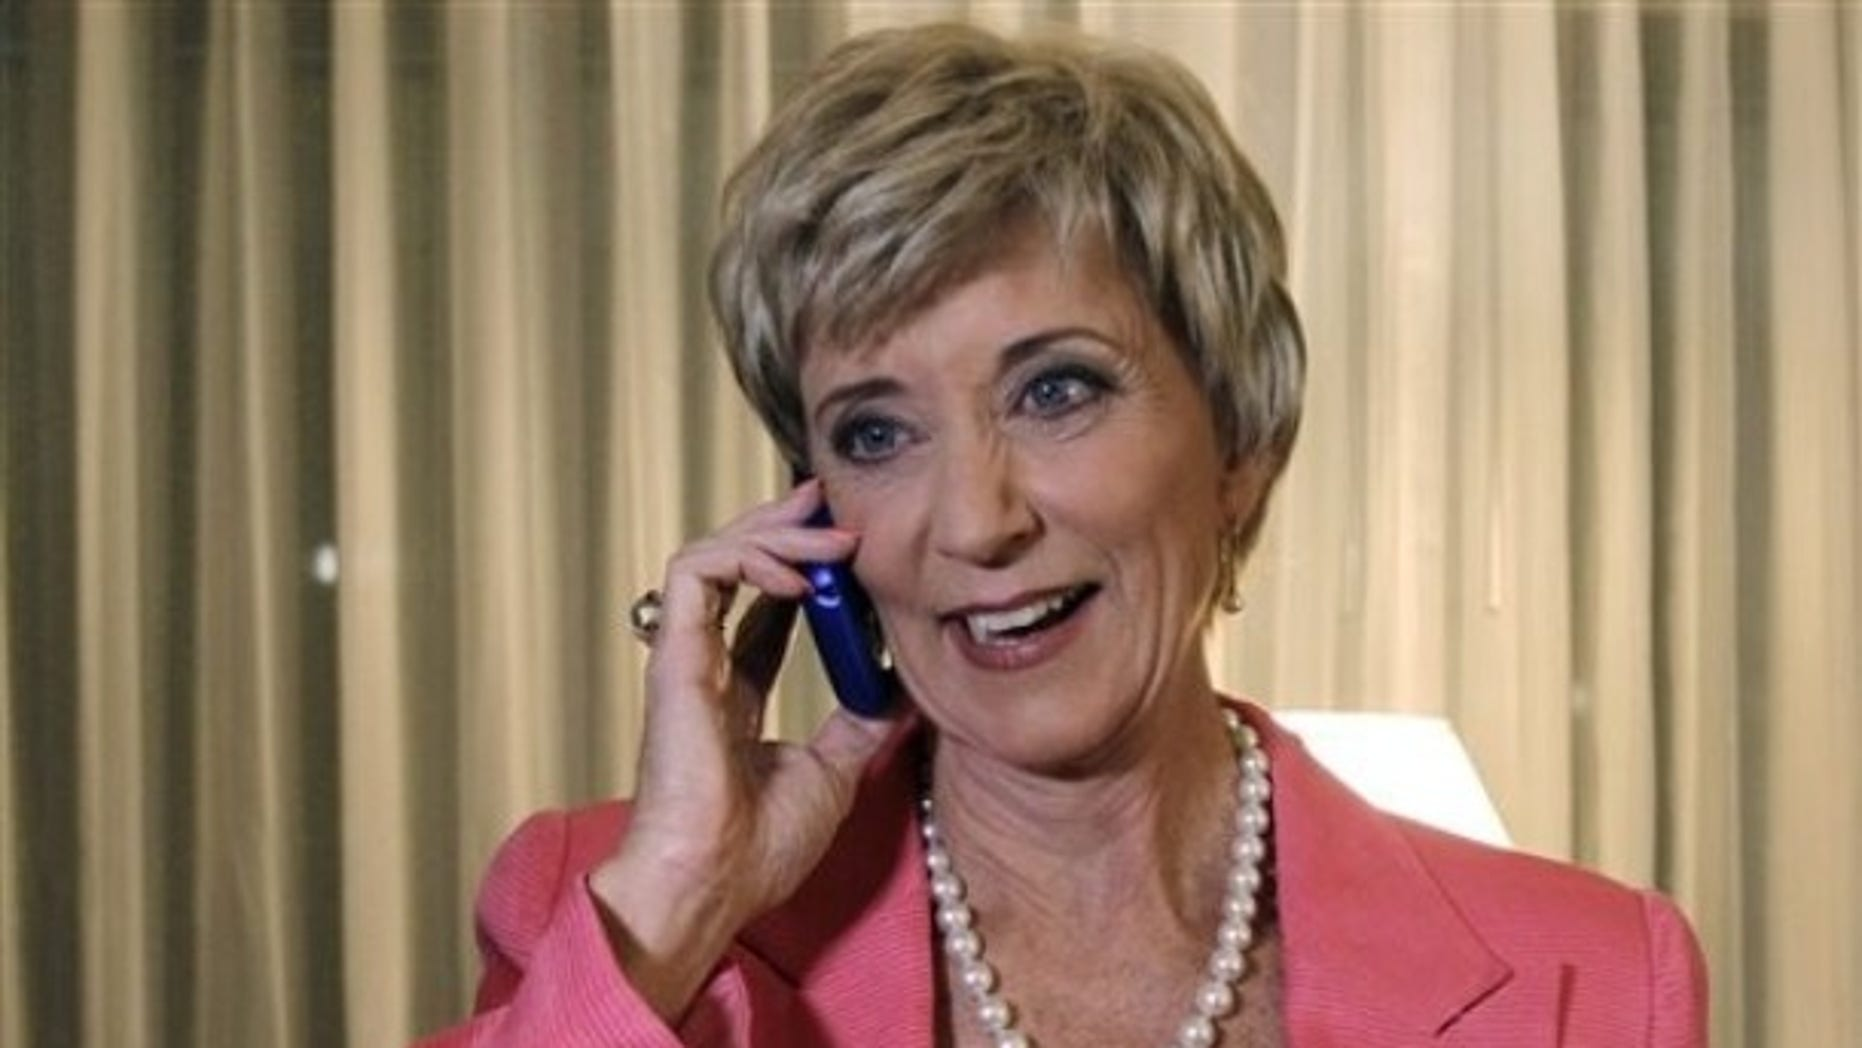 FILE: Aug. 10, 2010: Republican candidate for U.S. Senate Linda McMahon, a former wrestling executive, in Cromwell, Conn.